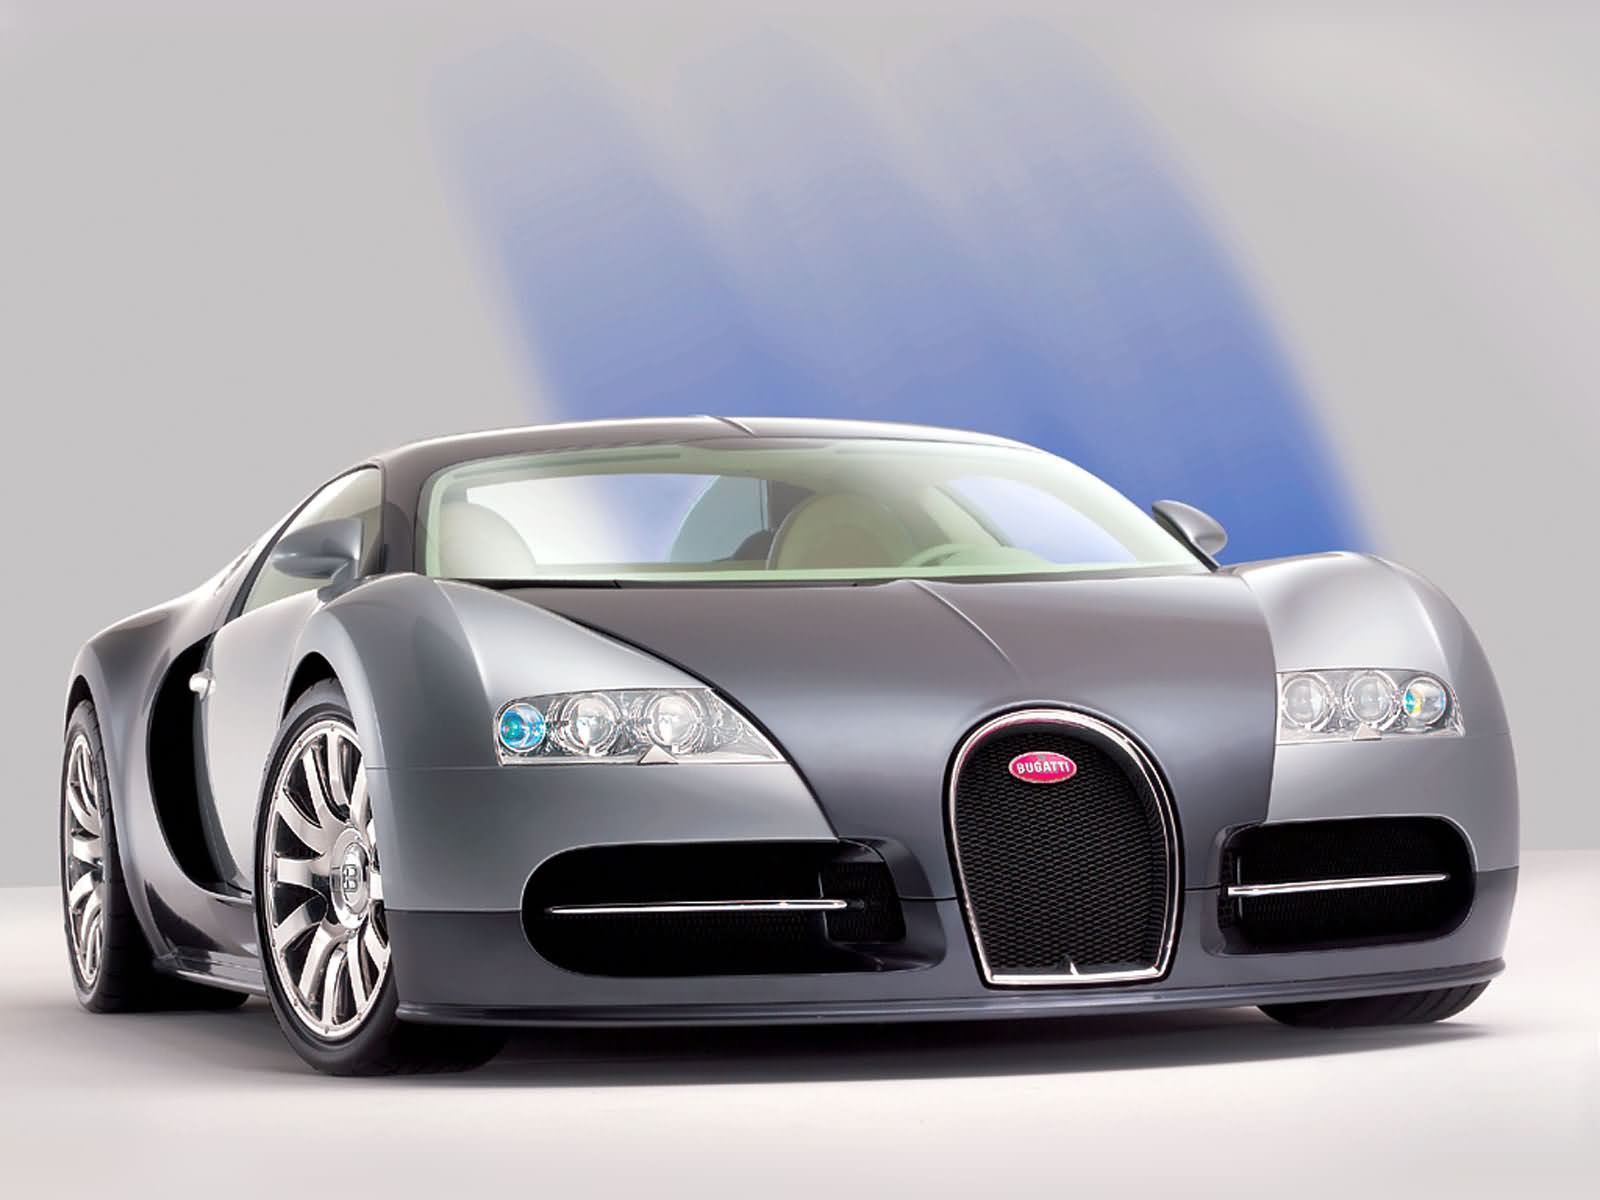 Bugatti Veyron Wallpaper Amazing Cars